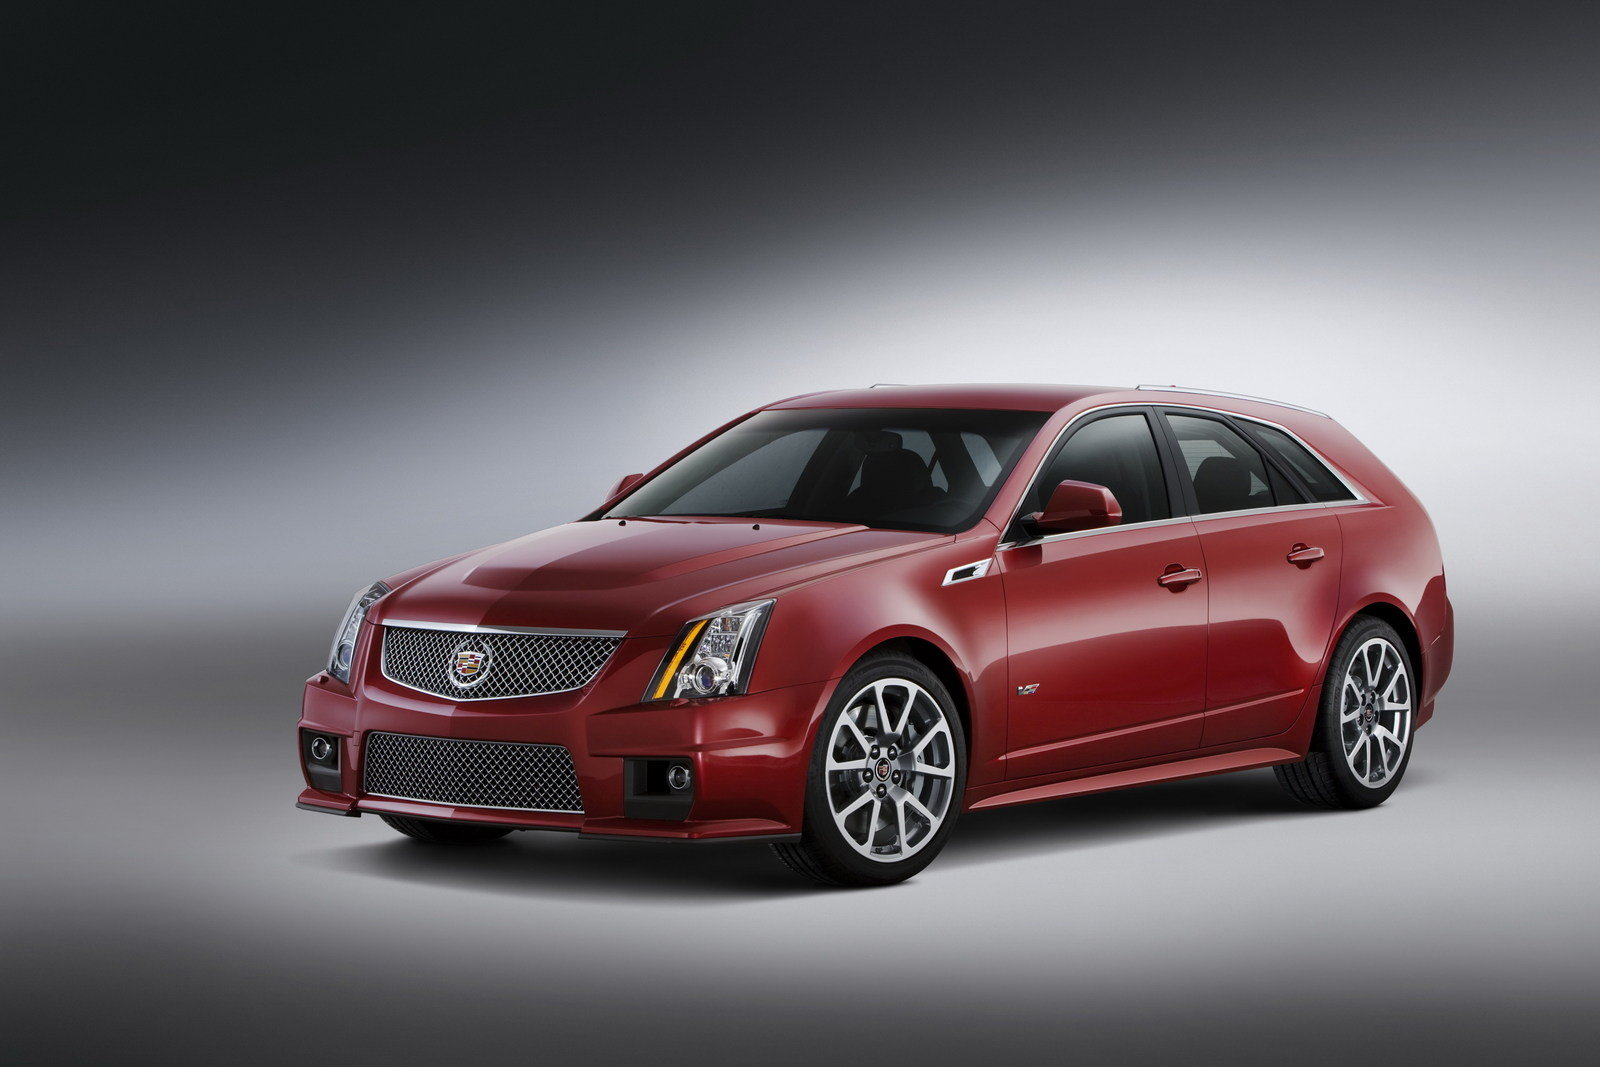 2014 cadillac cts v wagon picture 545928 car review top speed. Black Bedroom Furniture Sets. Home Design Ideas